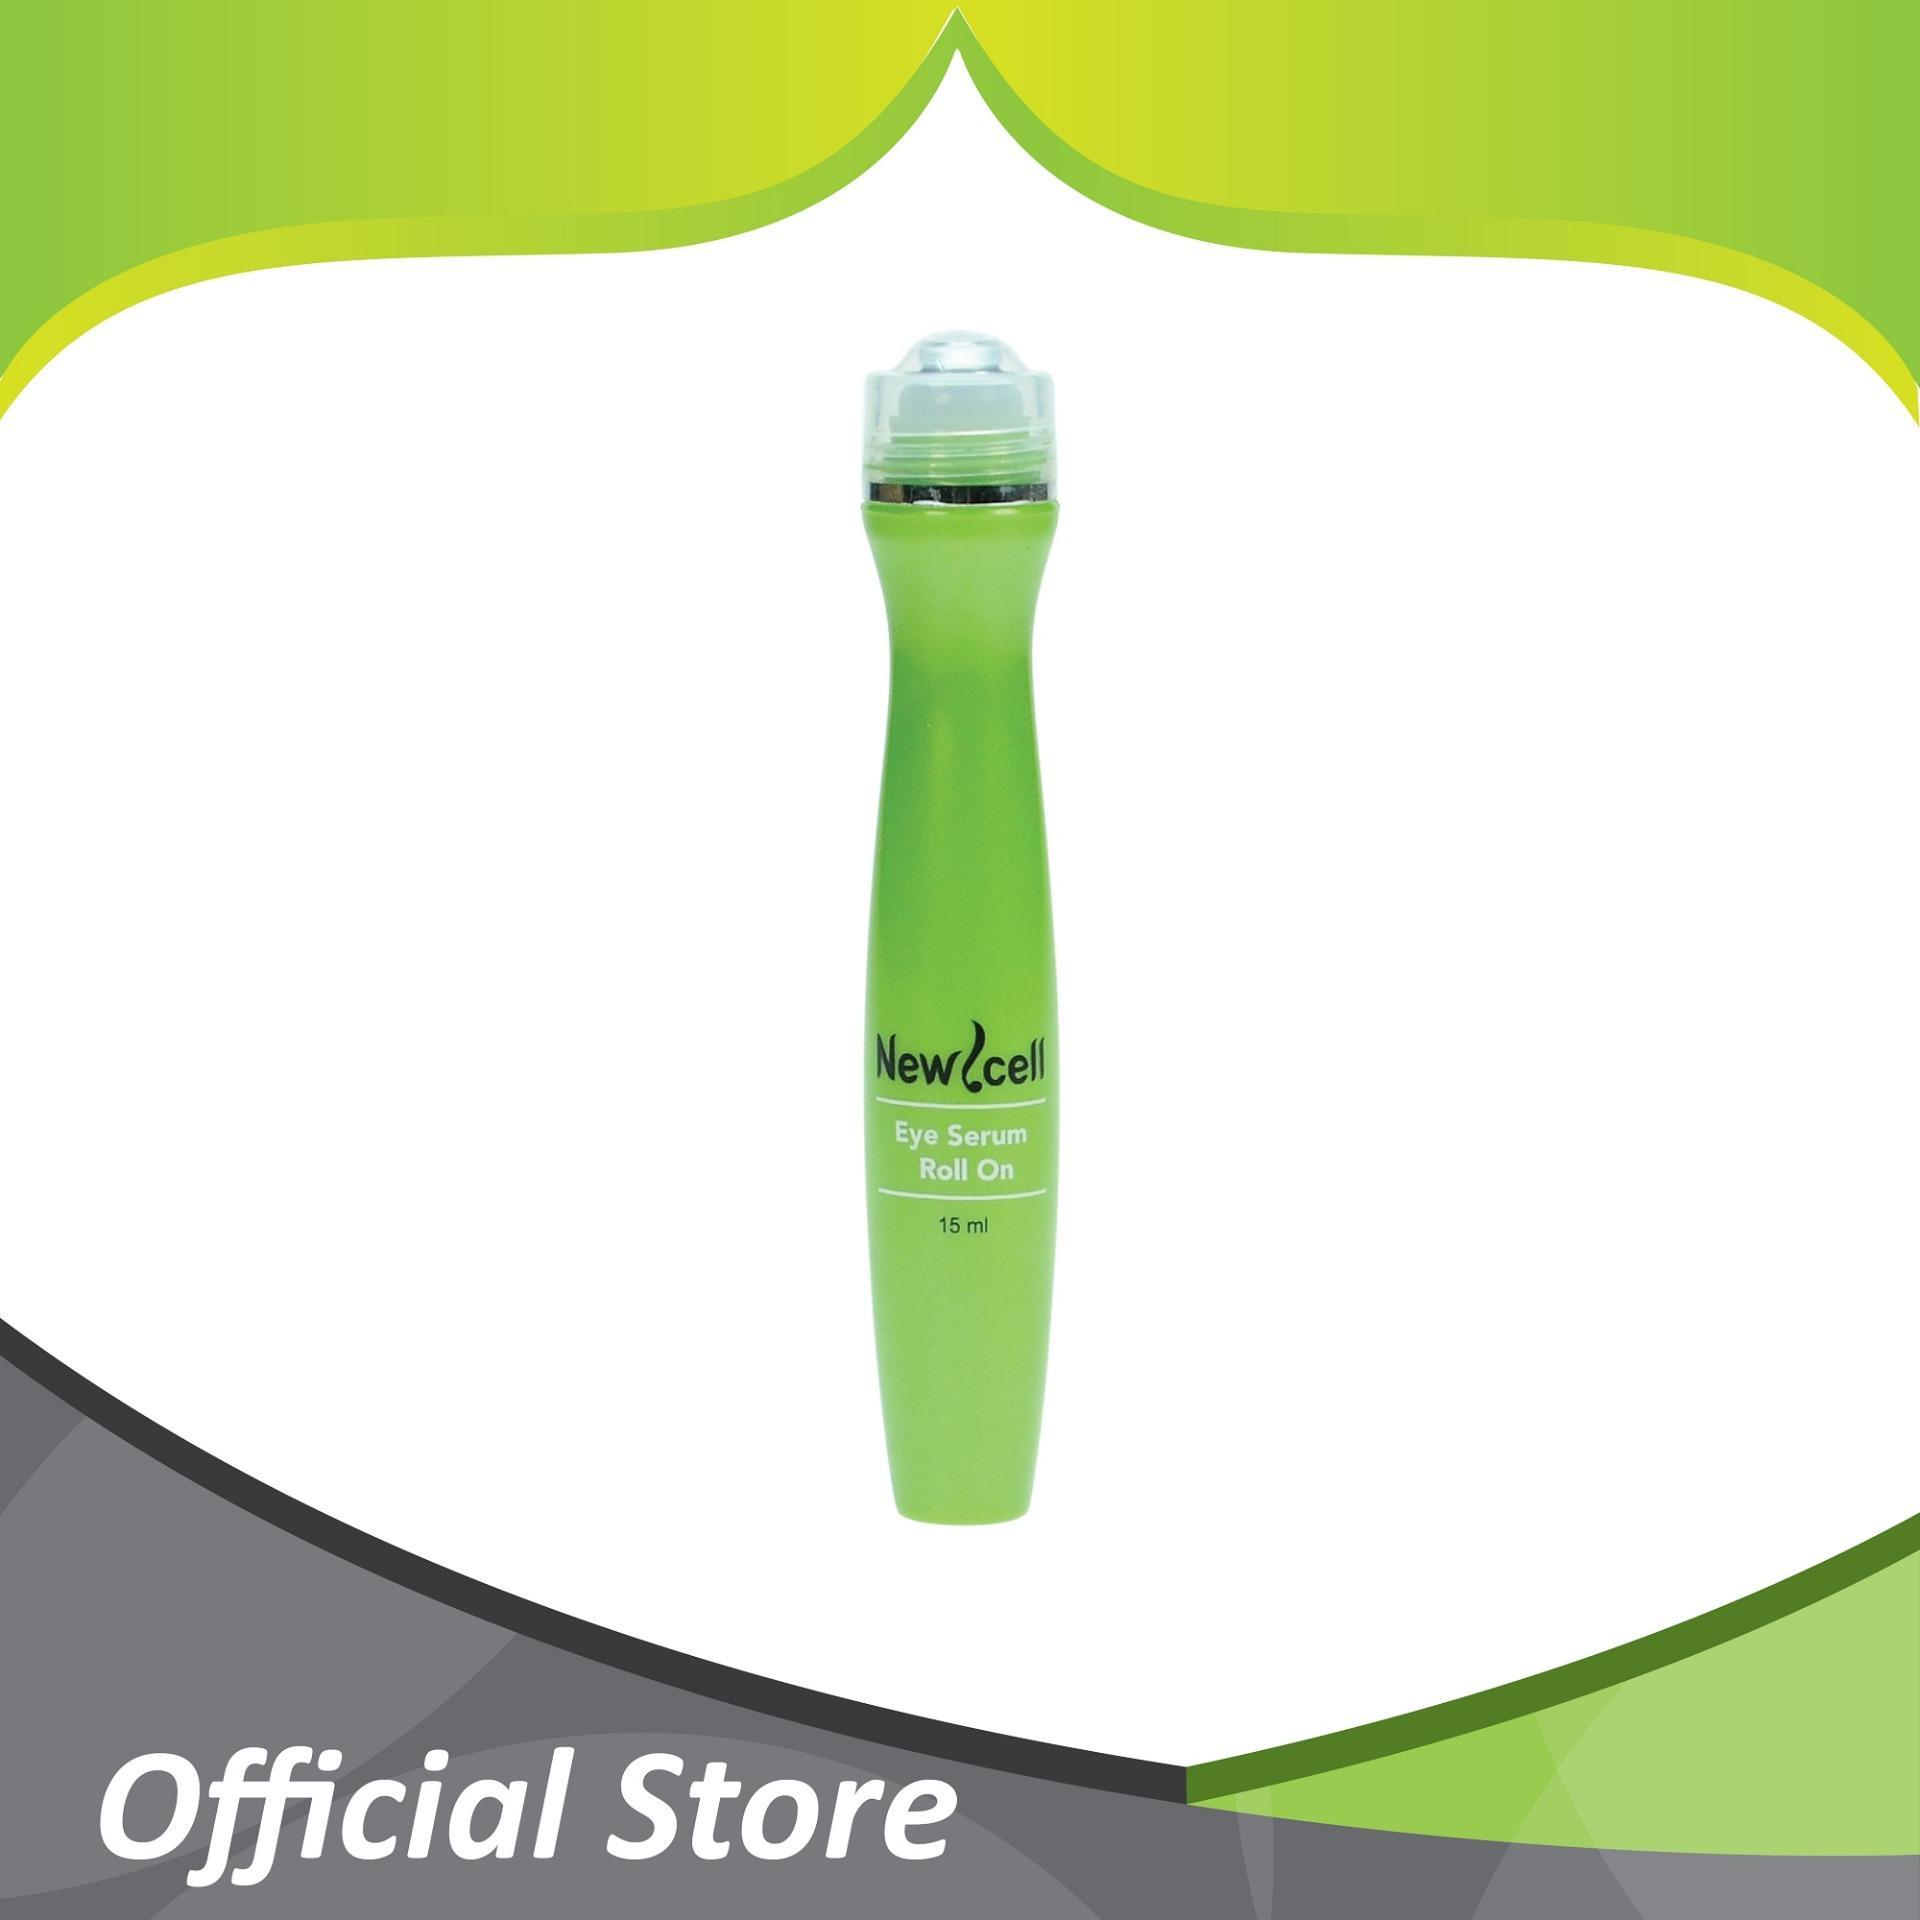 Purbasari New Cell Eye Serum Roll On